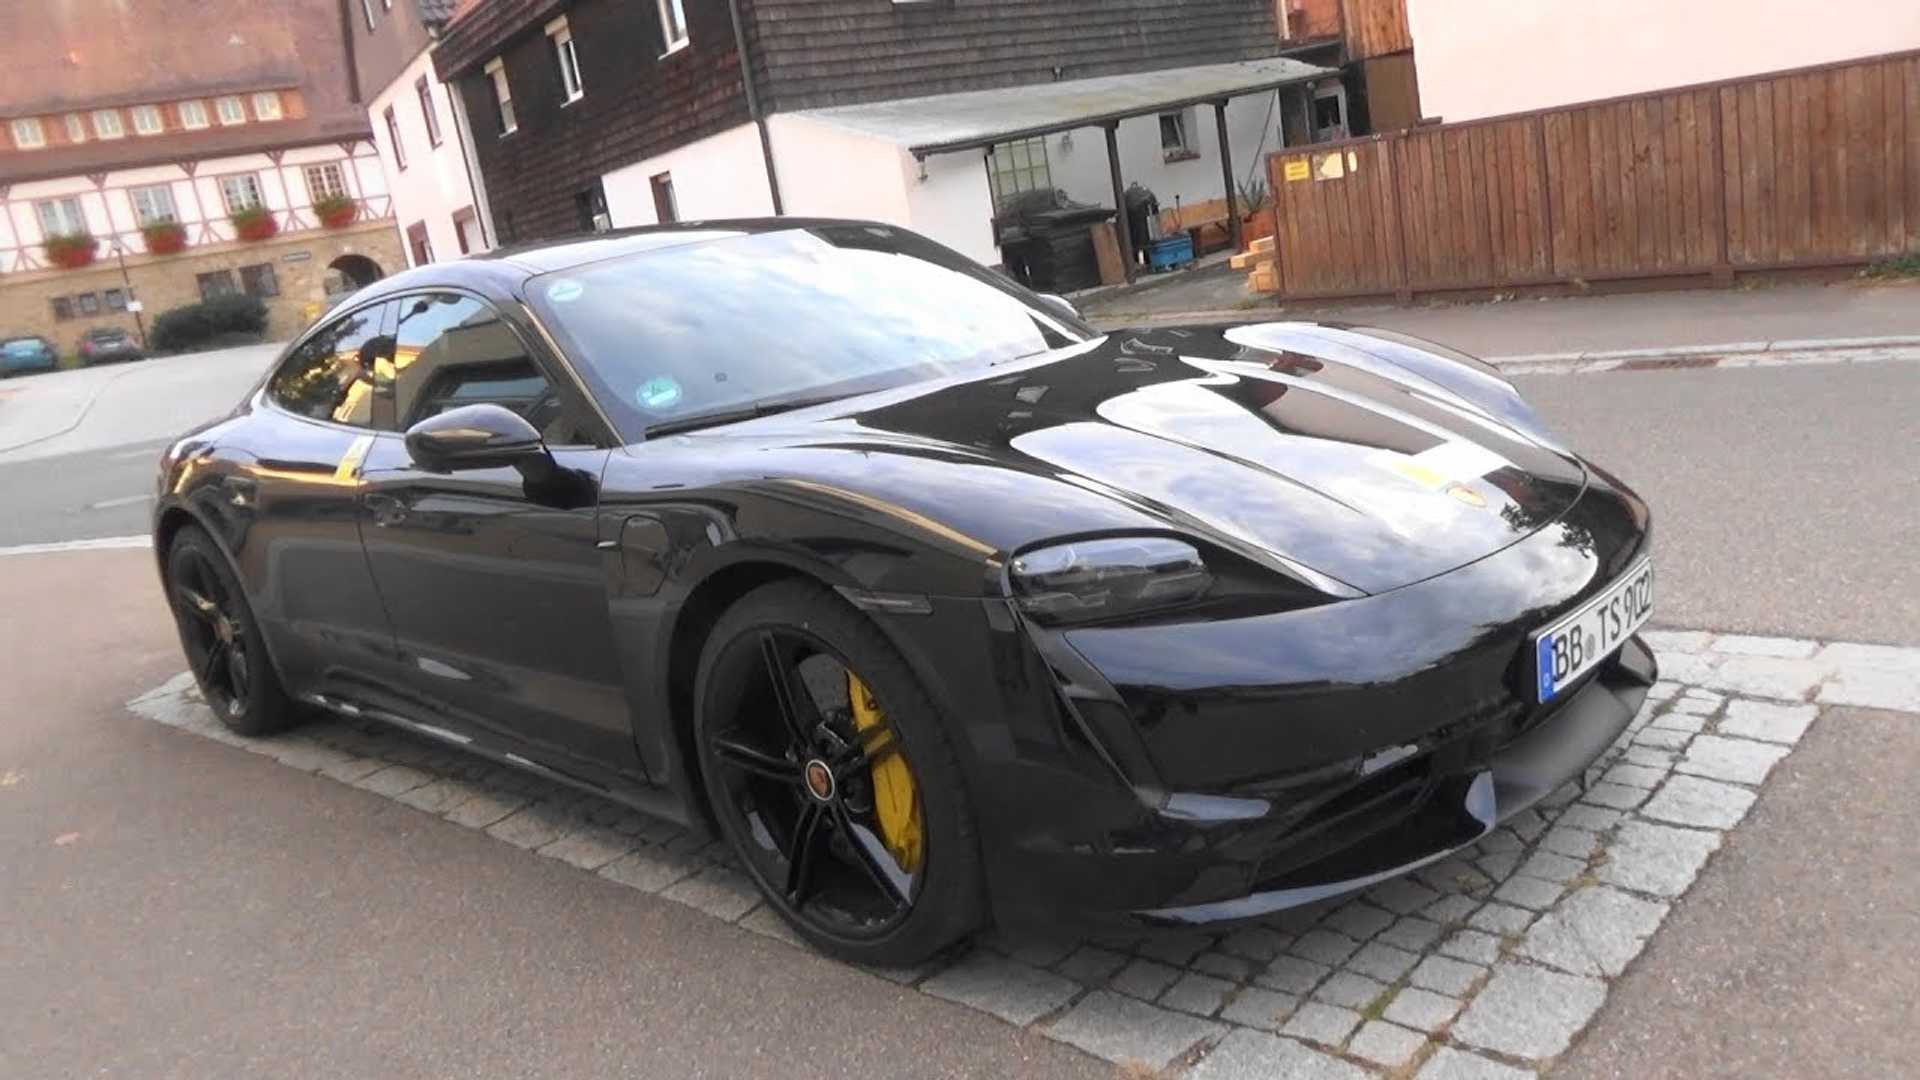 Porsche Taycan Turbo S Spotted Undisguised In Public